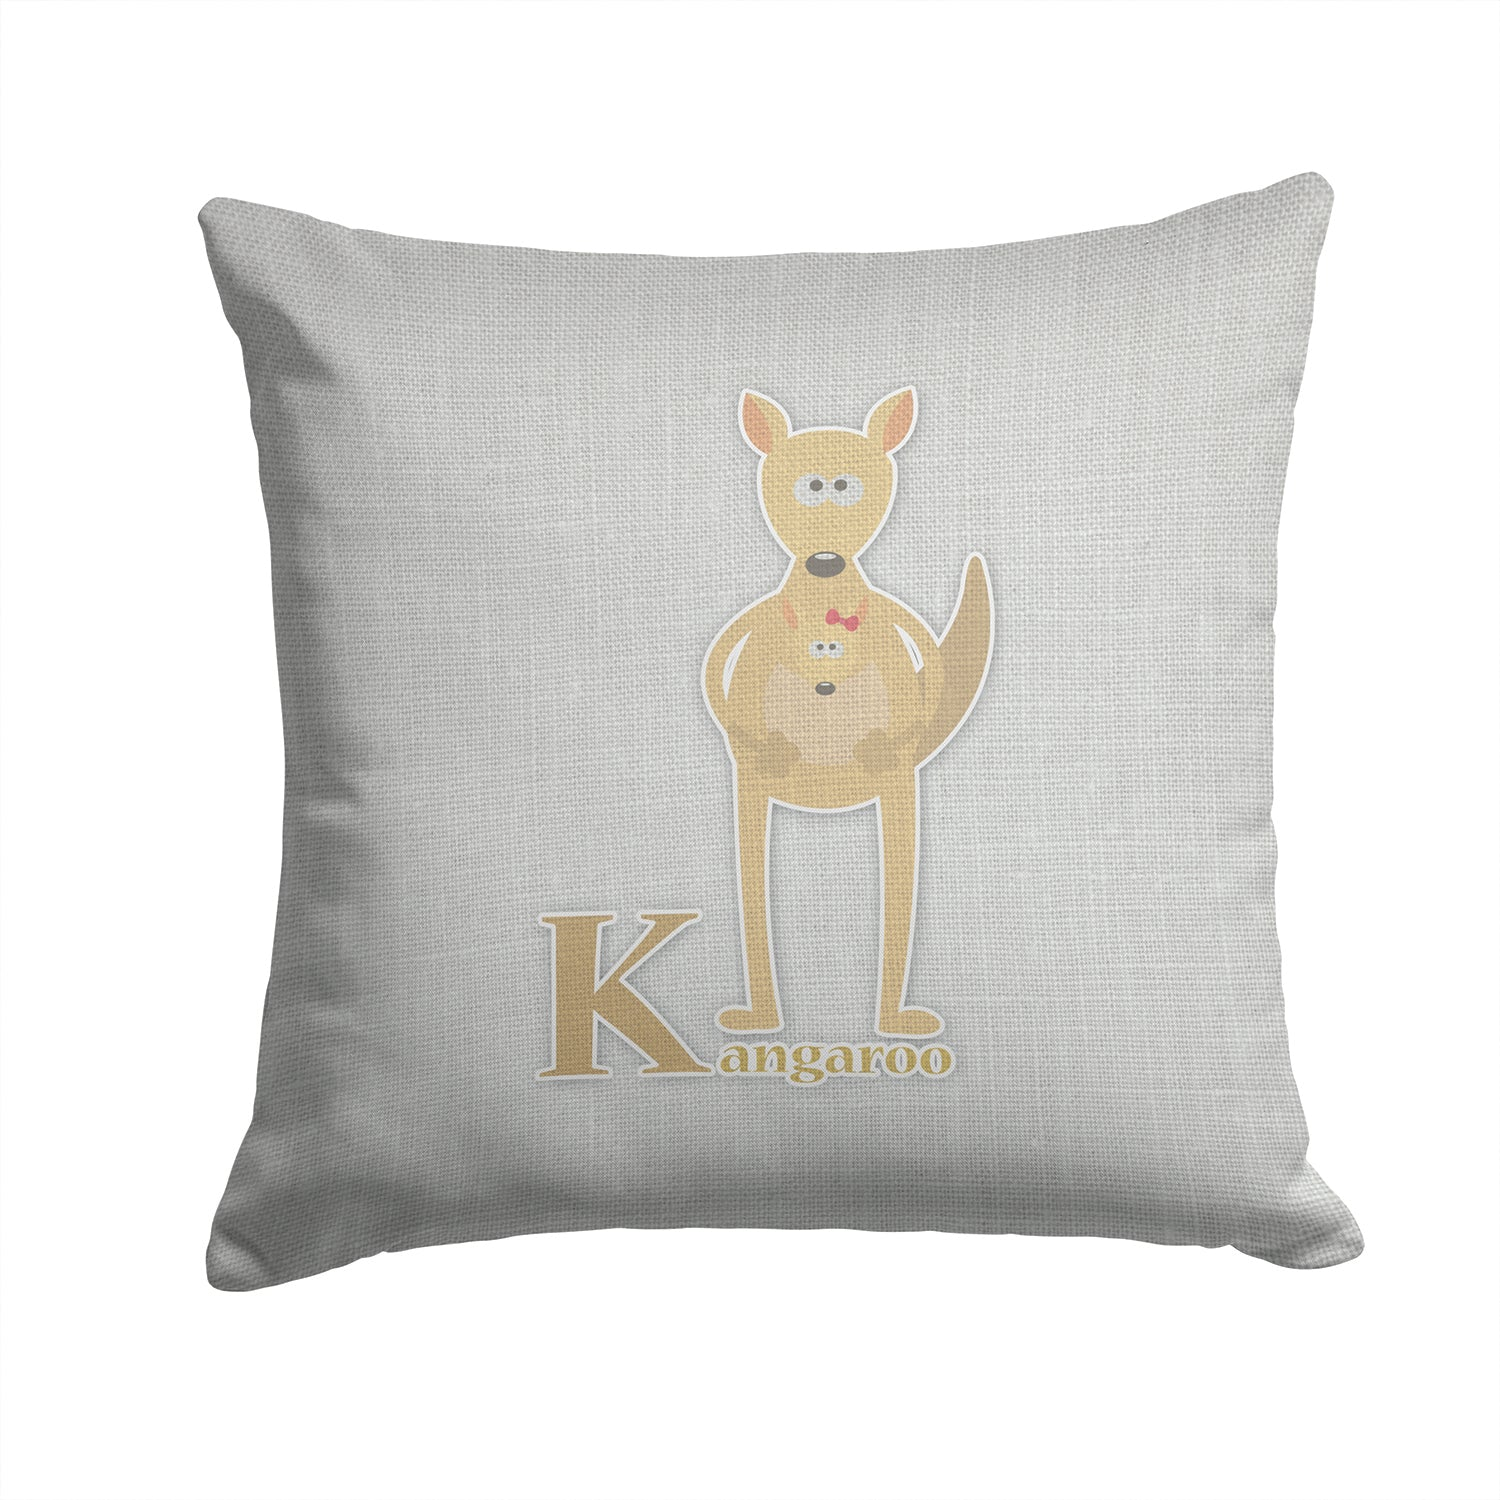 Buy this Alphabet K for Kangaroo Fabric Decorative Pillow BB5736PW1414